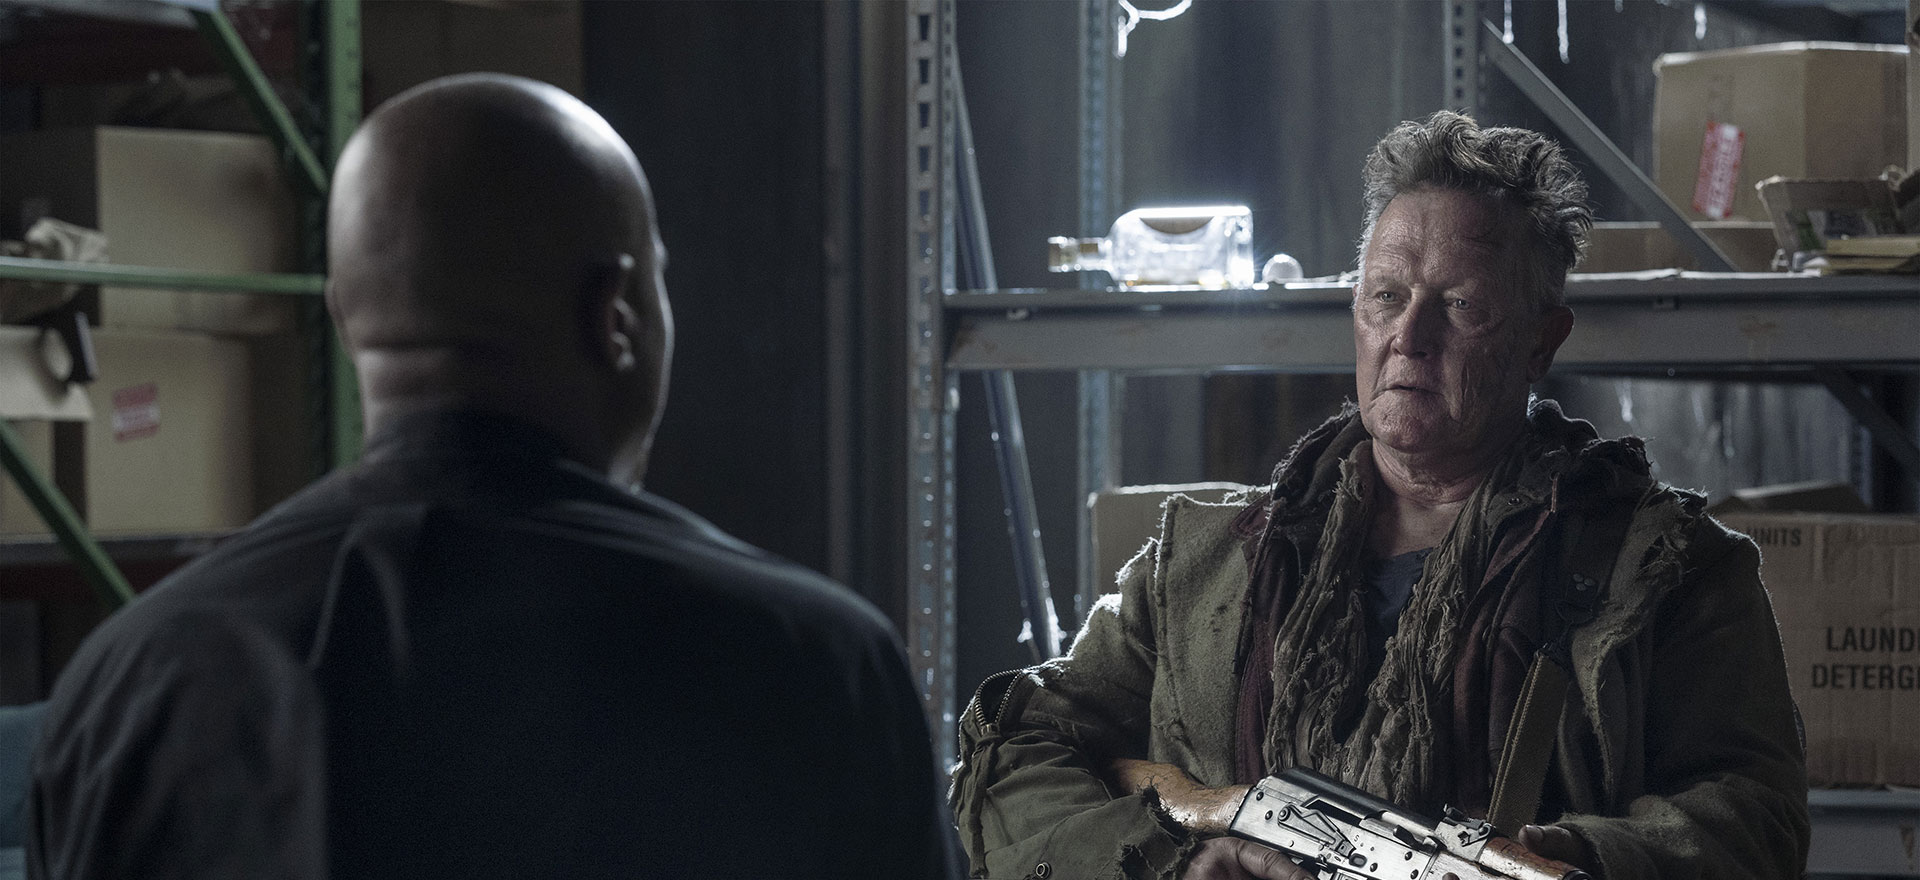 The Walking Dead Q&A — Robert Patrick on the Tragedy of Mays